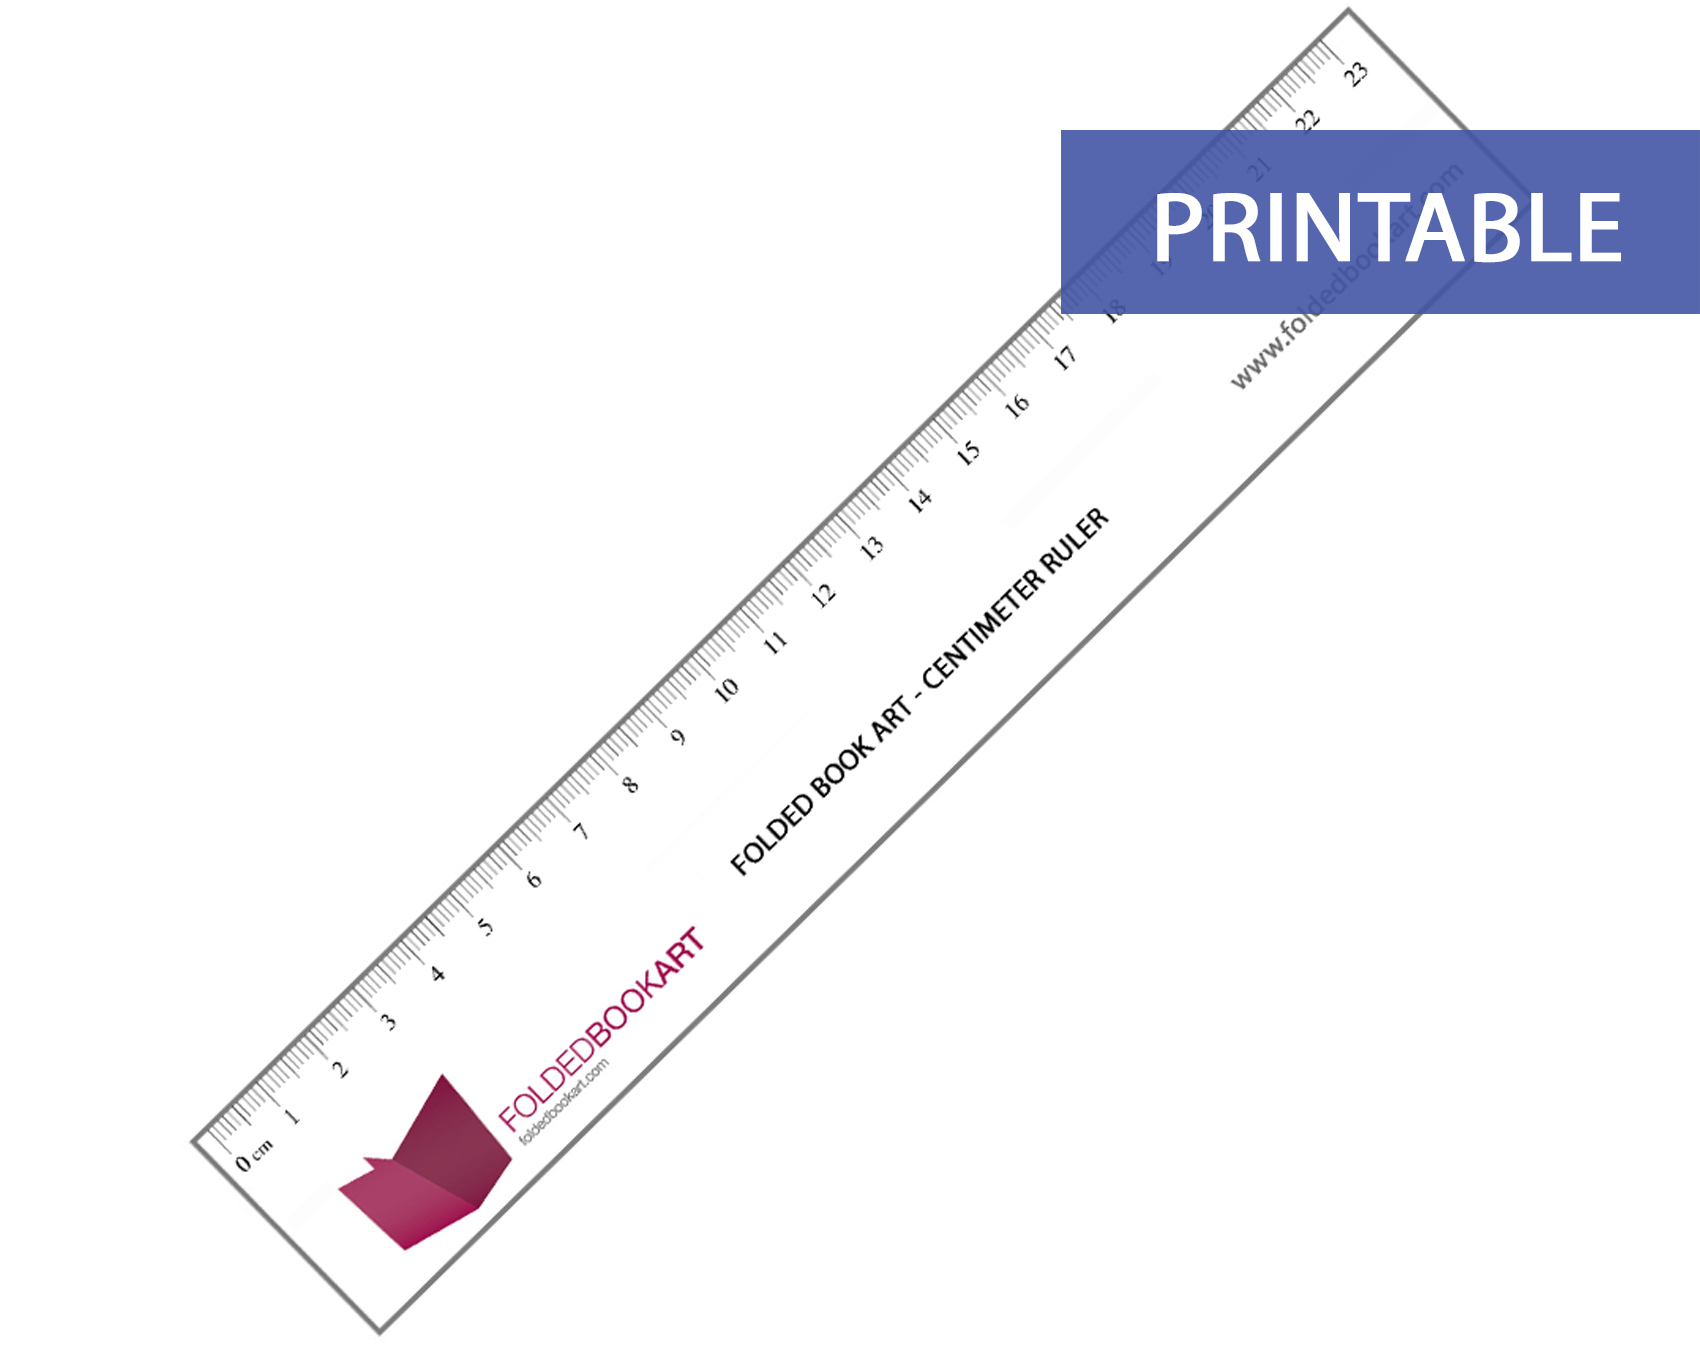 Printable Metric Ruler